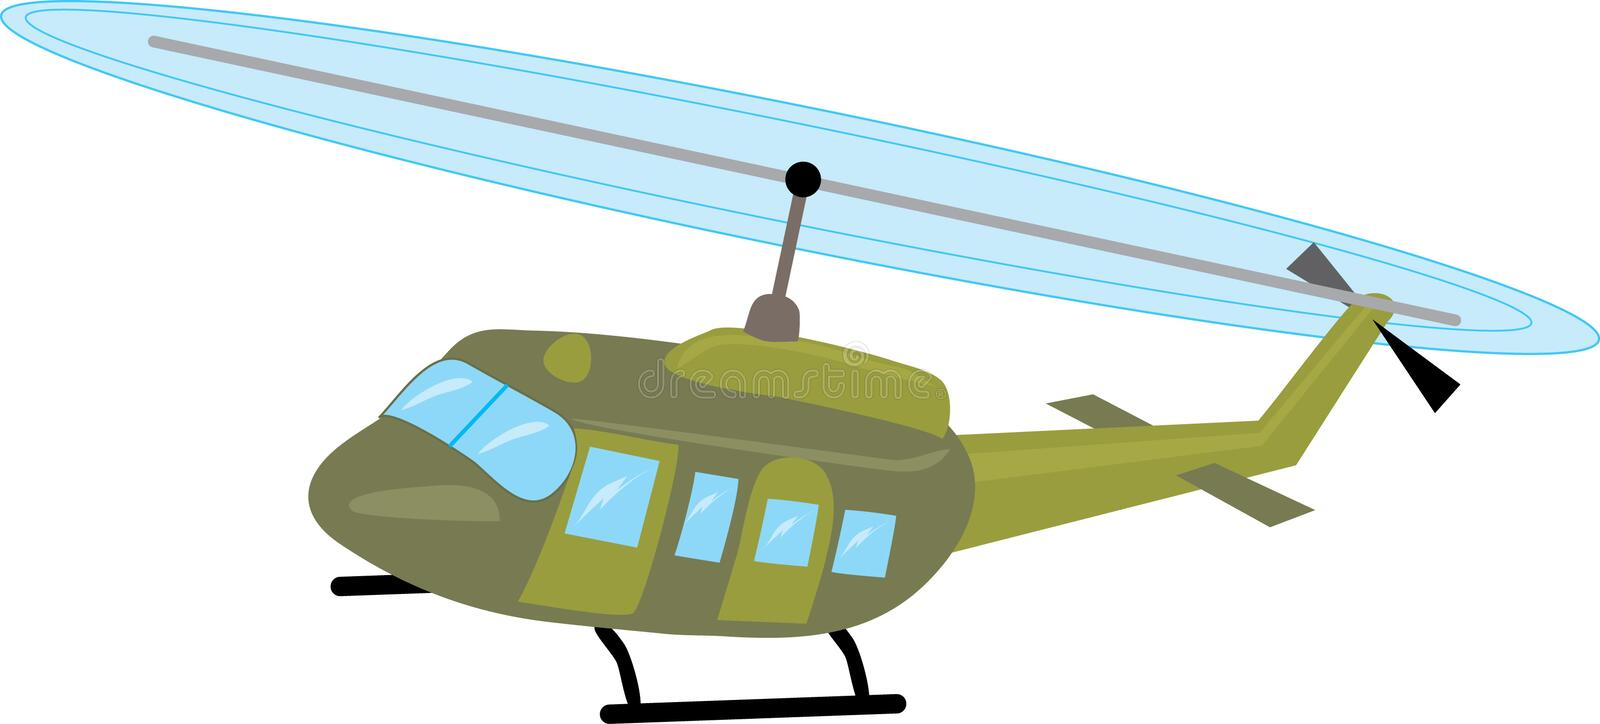 Helicopter. Illustration of Camouflaged Military Helicopter in flight royalty free illustration